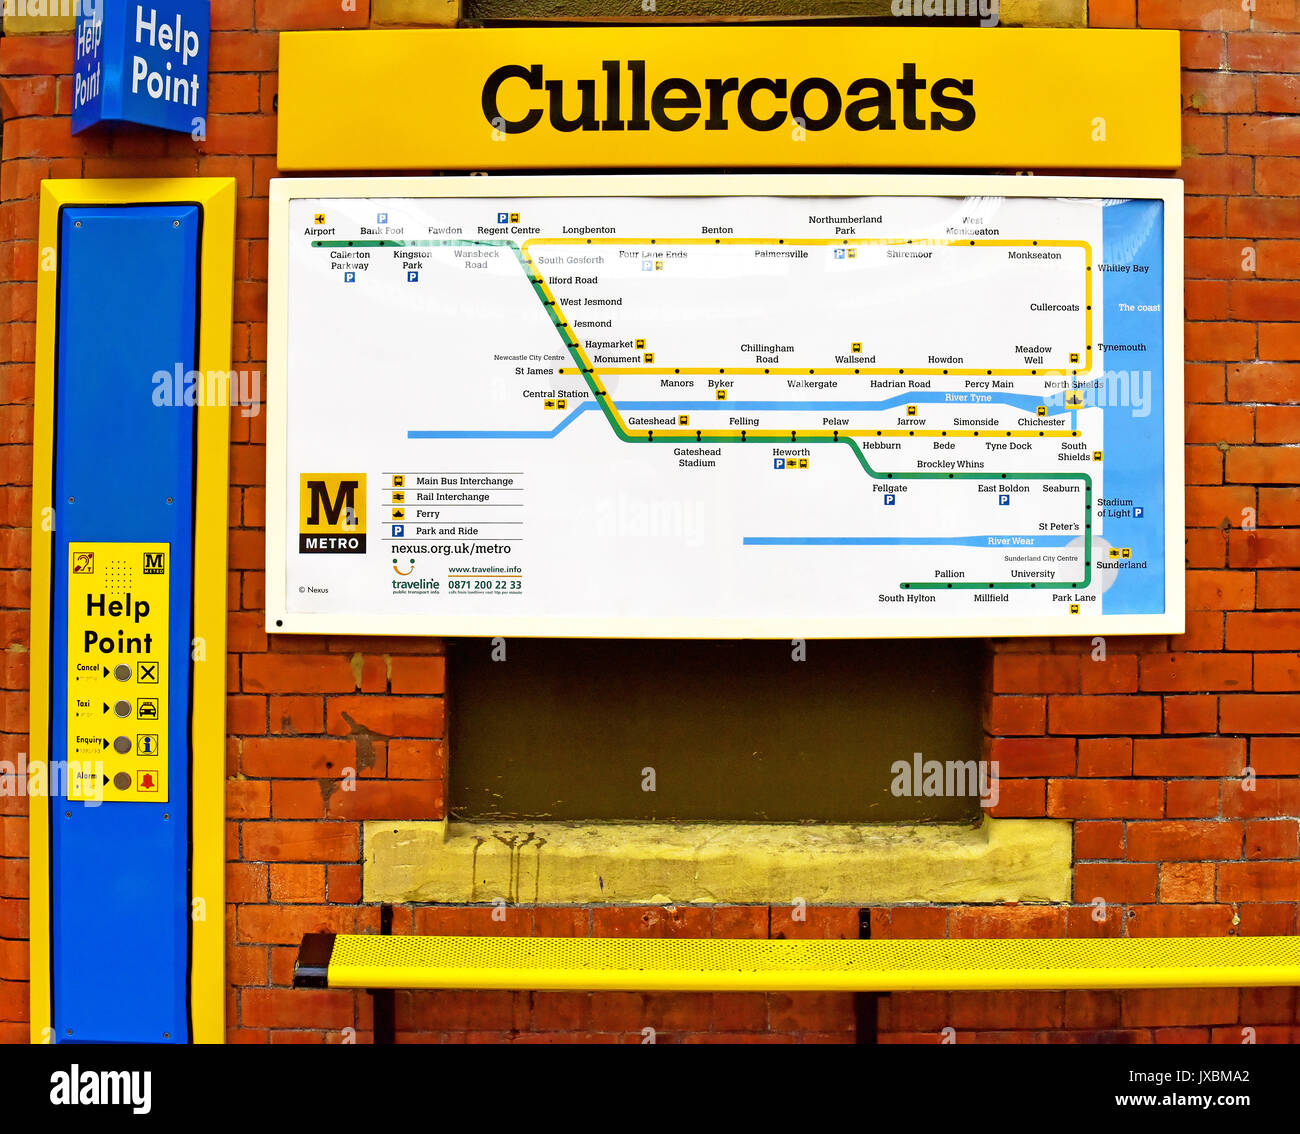 Cullercoats Metro station Metro map and information Stock Photo